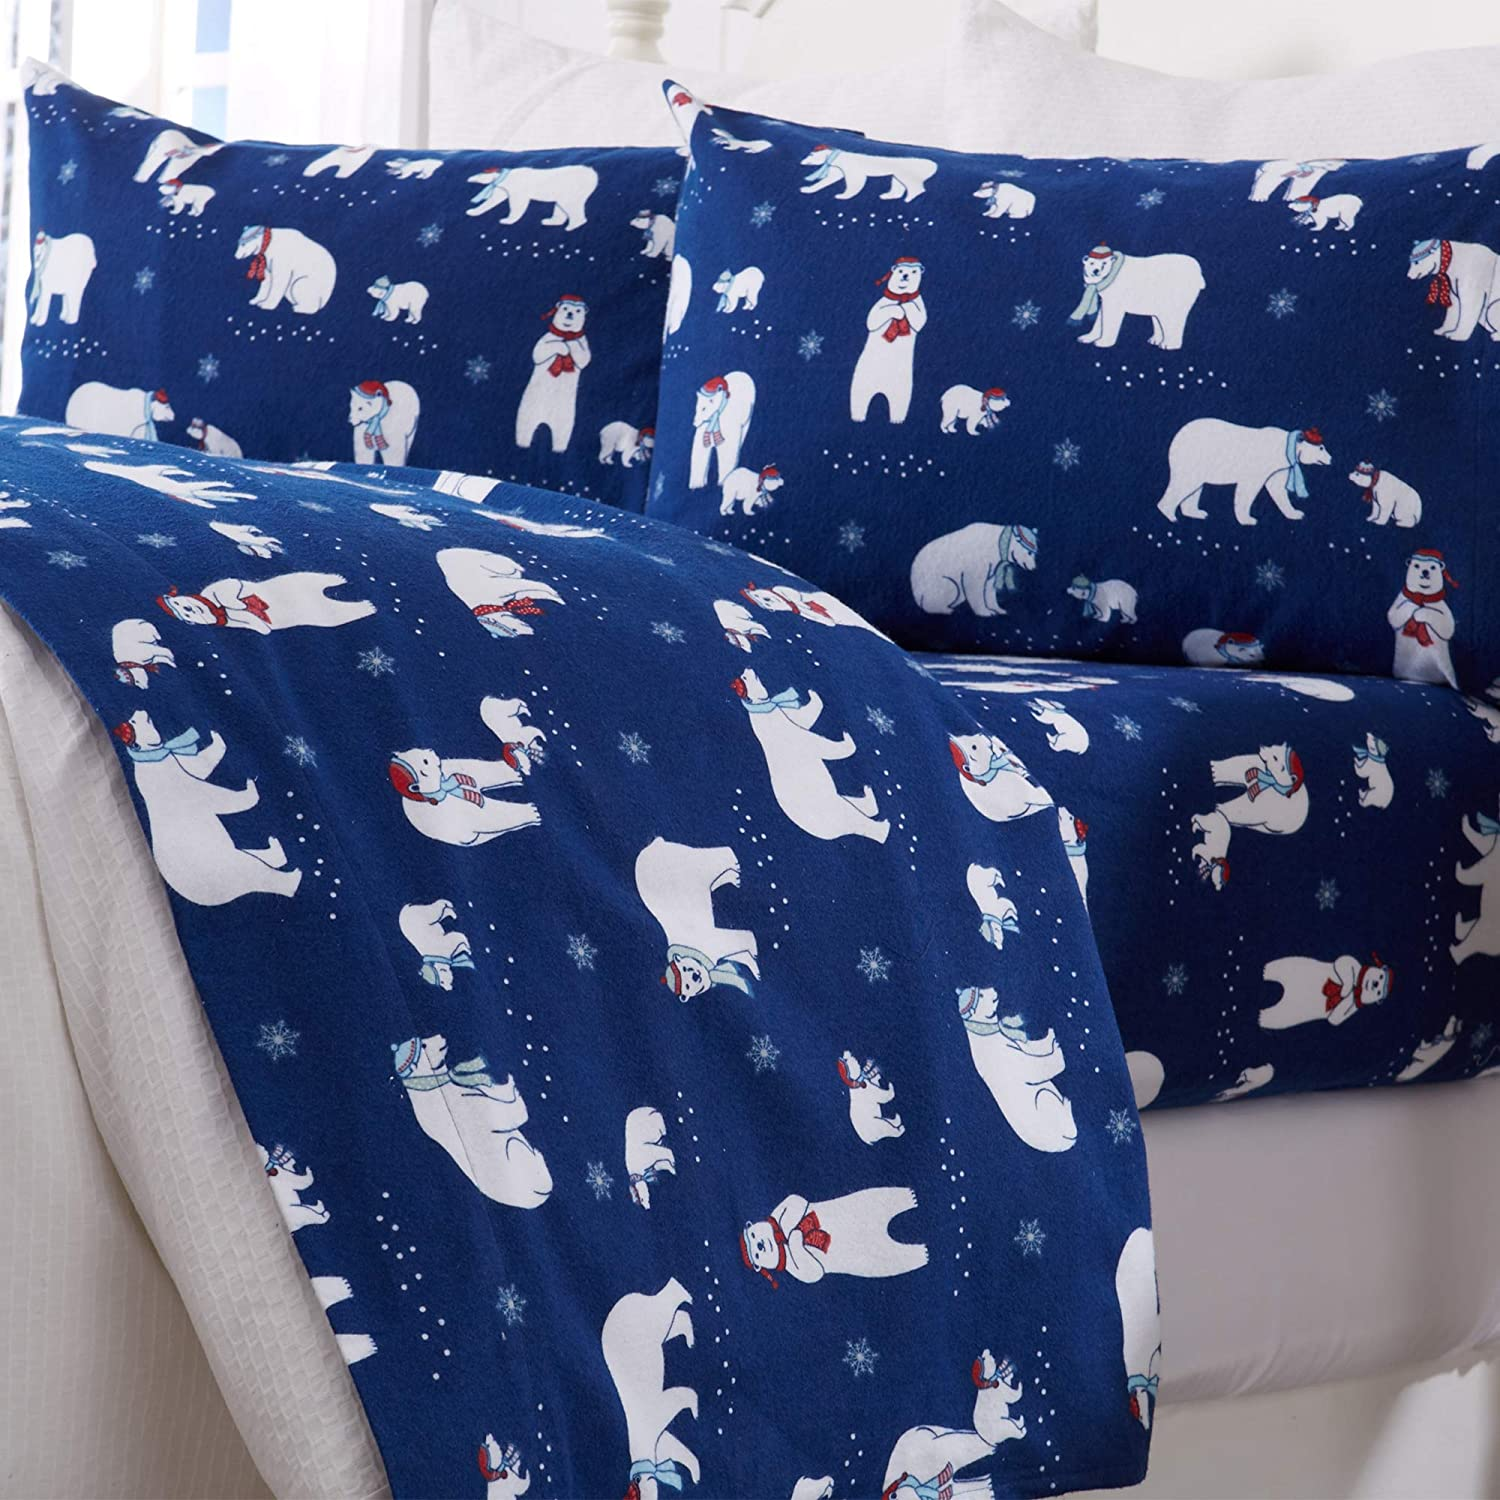 Great Bay Home Extra Soft Printed 100% Turkish Cotton Flannel Sheet Set. Warm, Cozy, Luxury Winter Bed Sheets. Belle Collection (Queen, Navy Polar Bears)